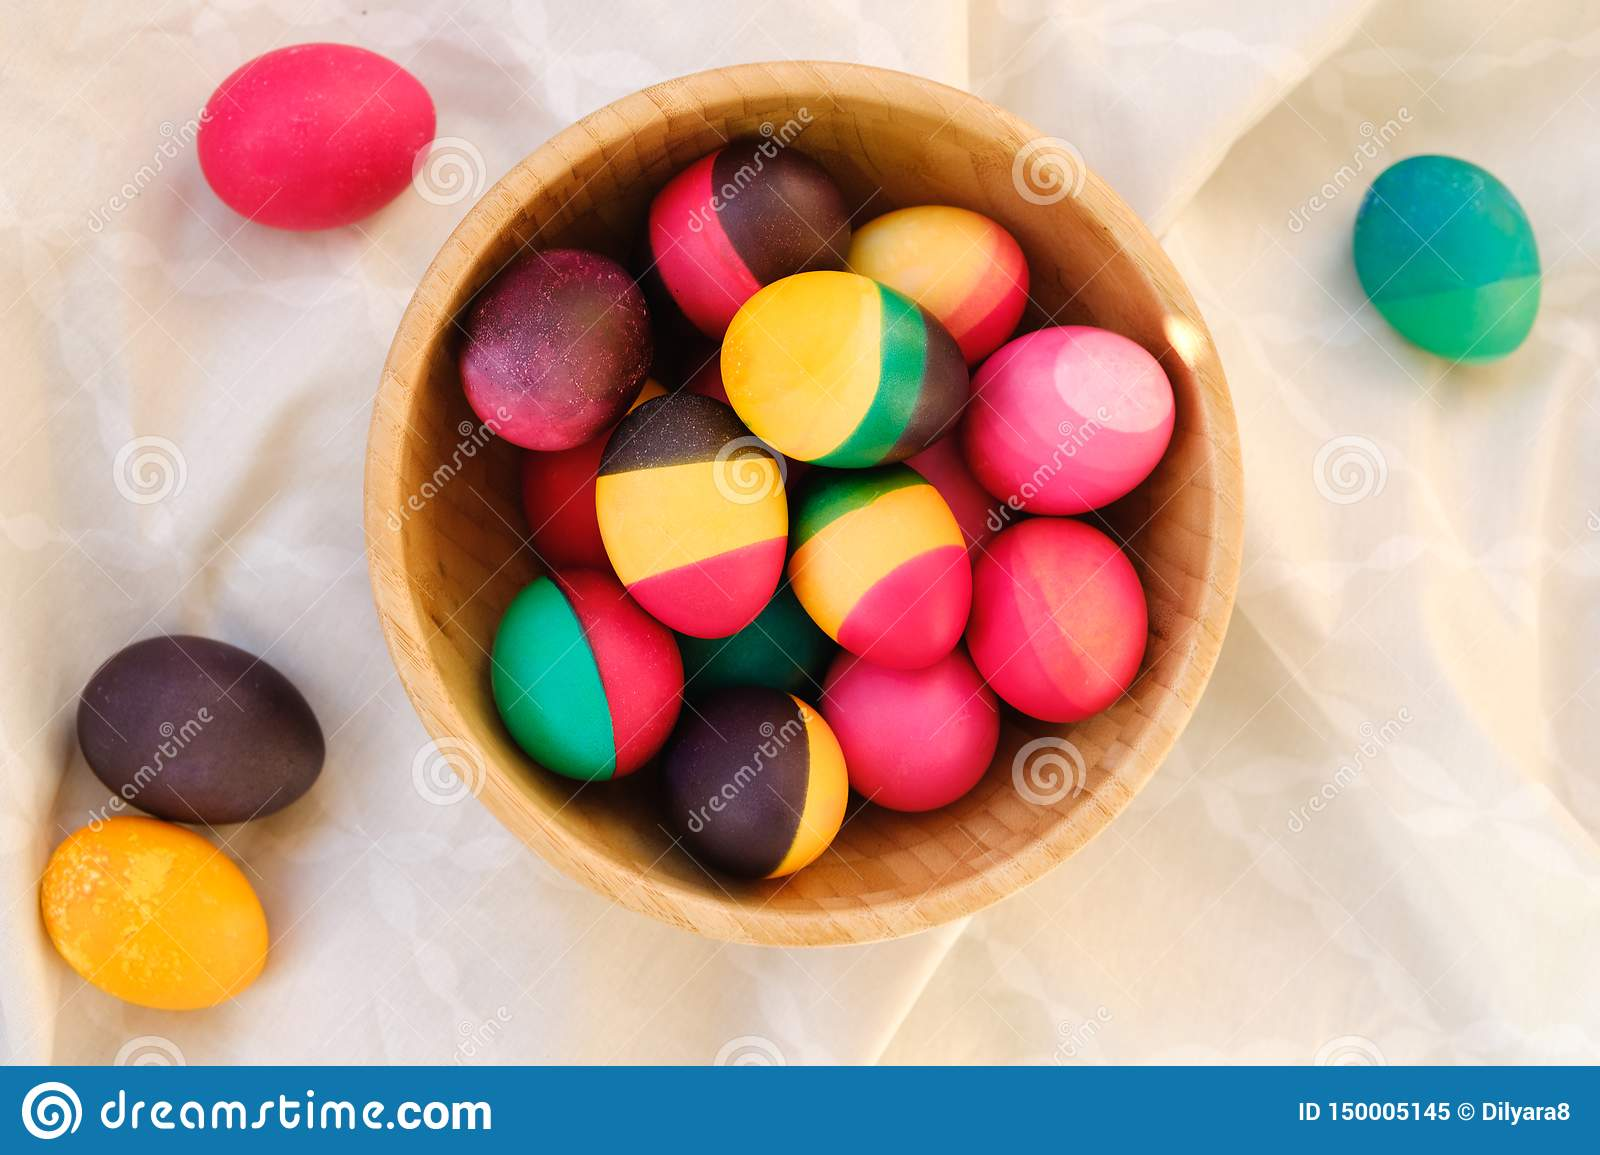 Decorative colorful Easter eggs in a wood bowl